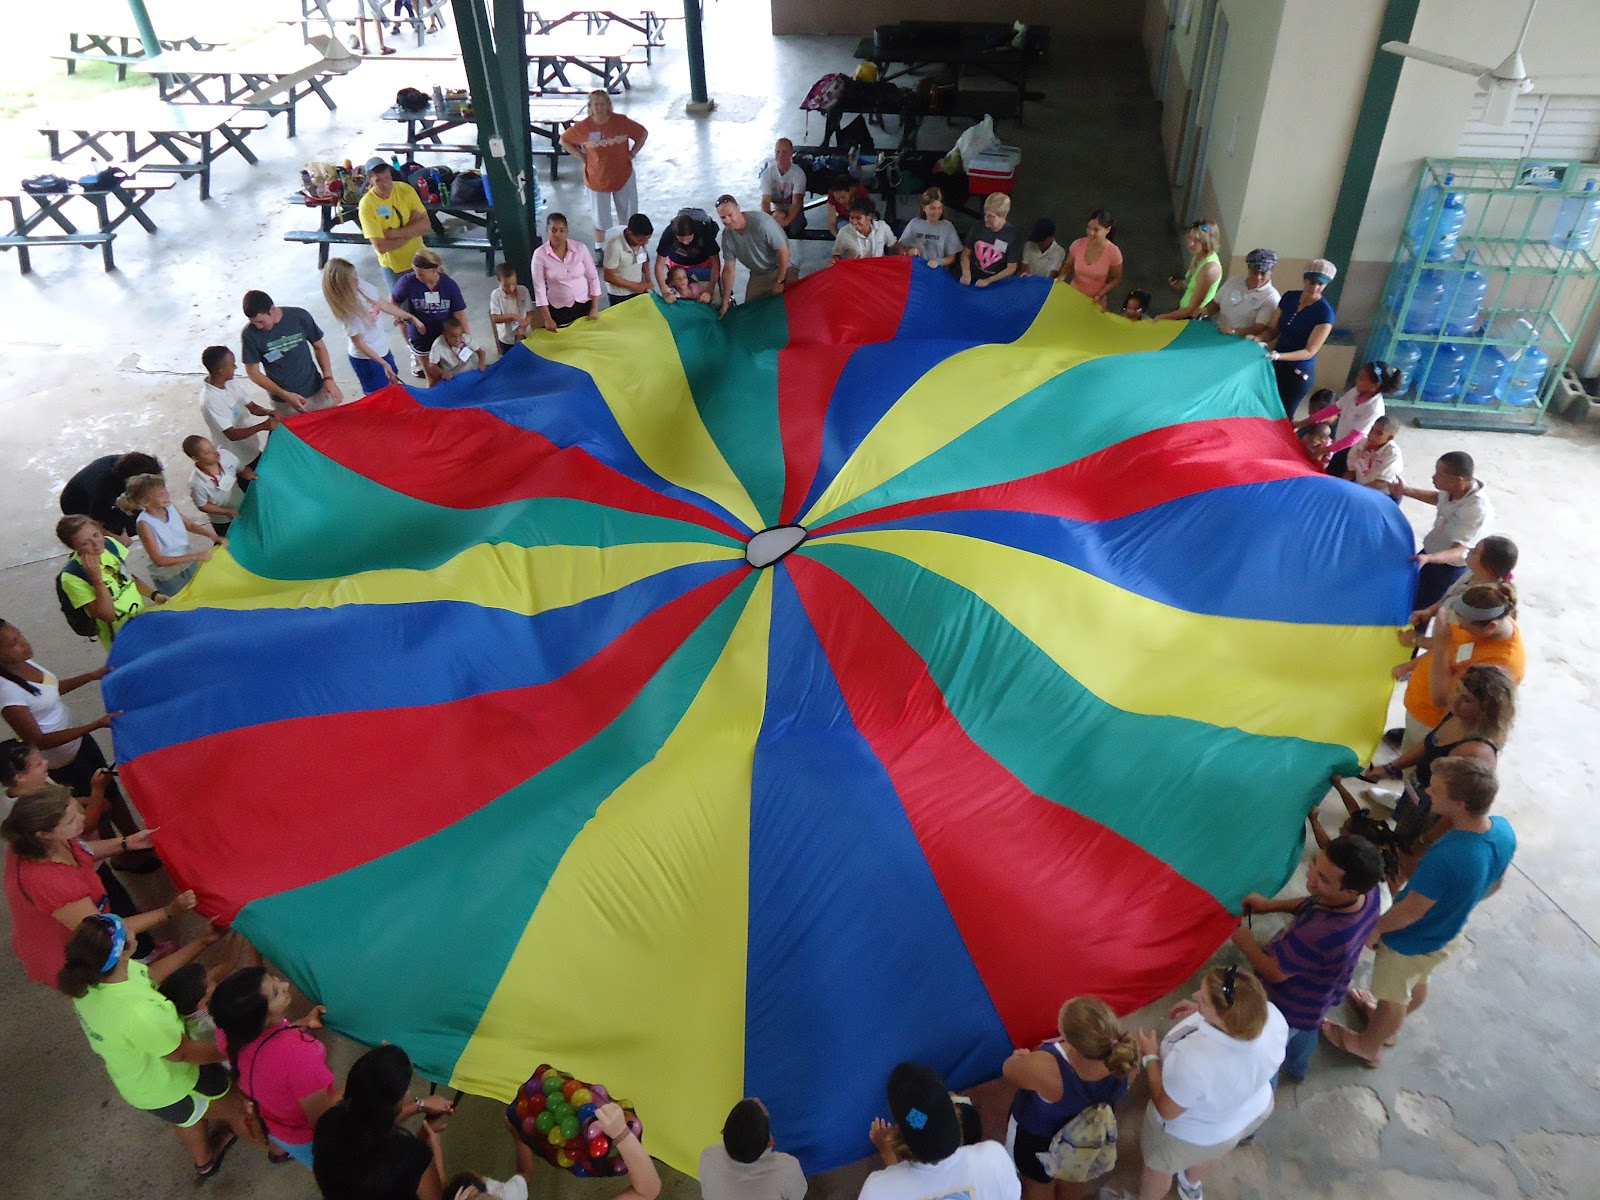 camp activities for adults with disabilities